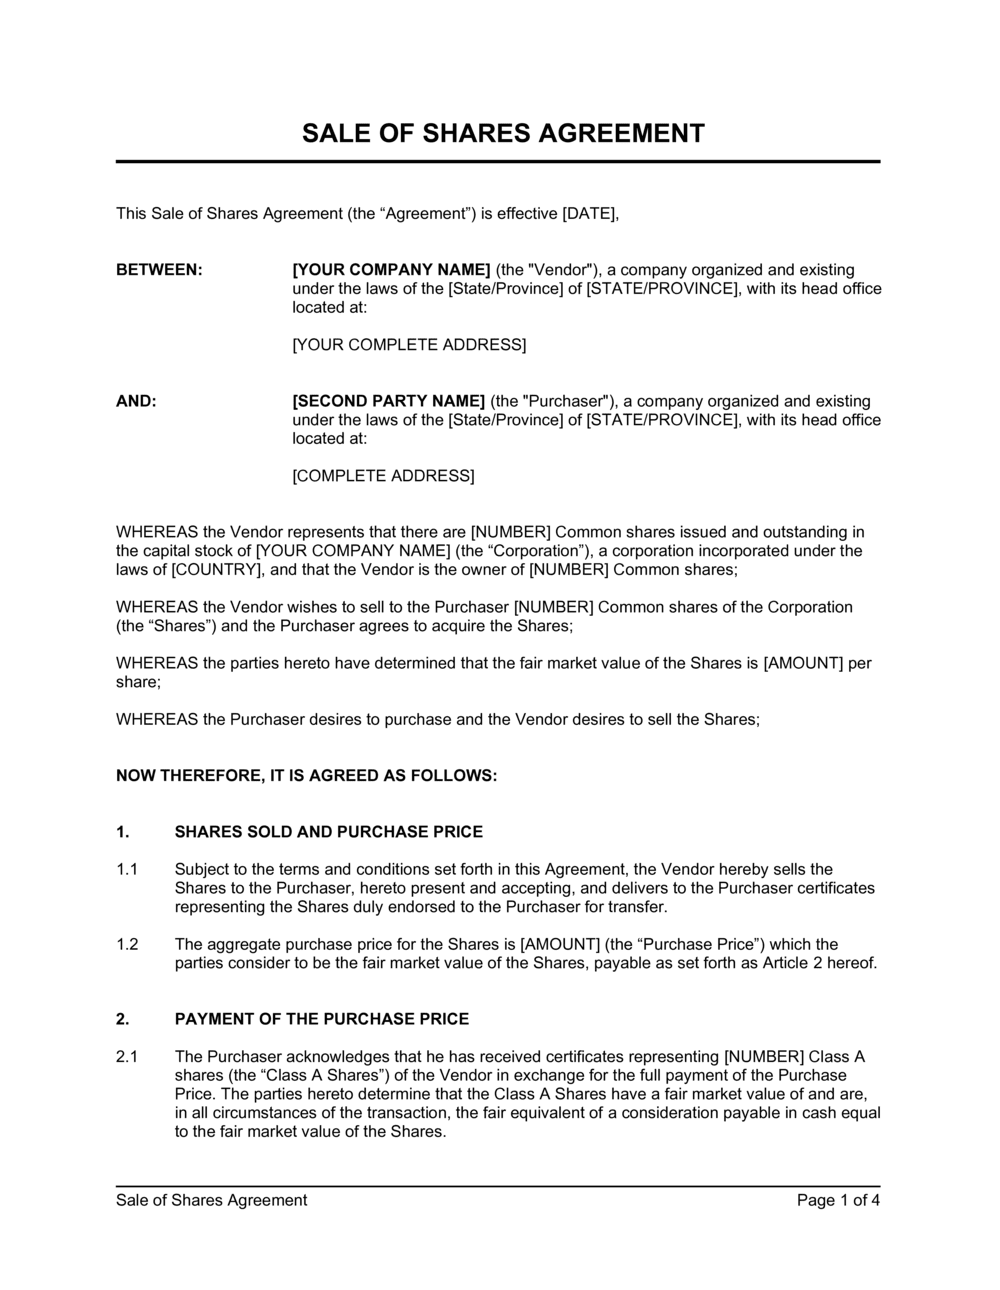 Business-in-a-Box's Sale of Shares Agreement Template